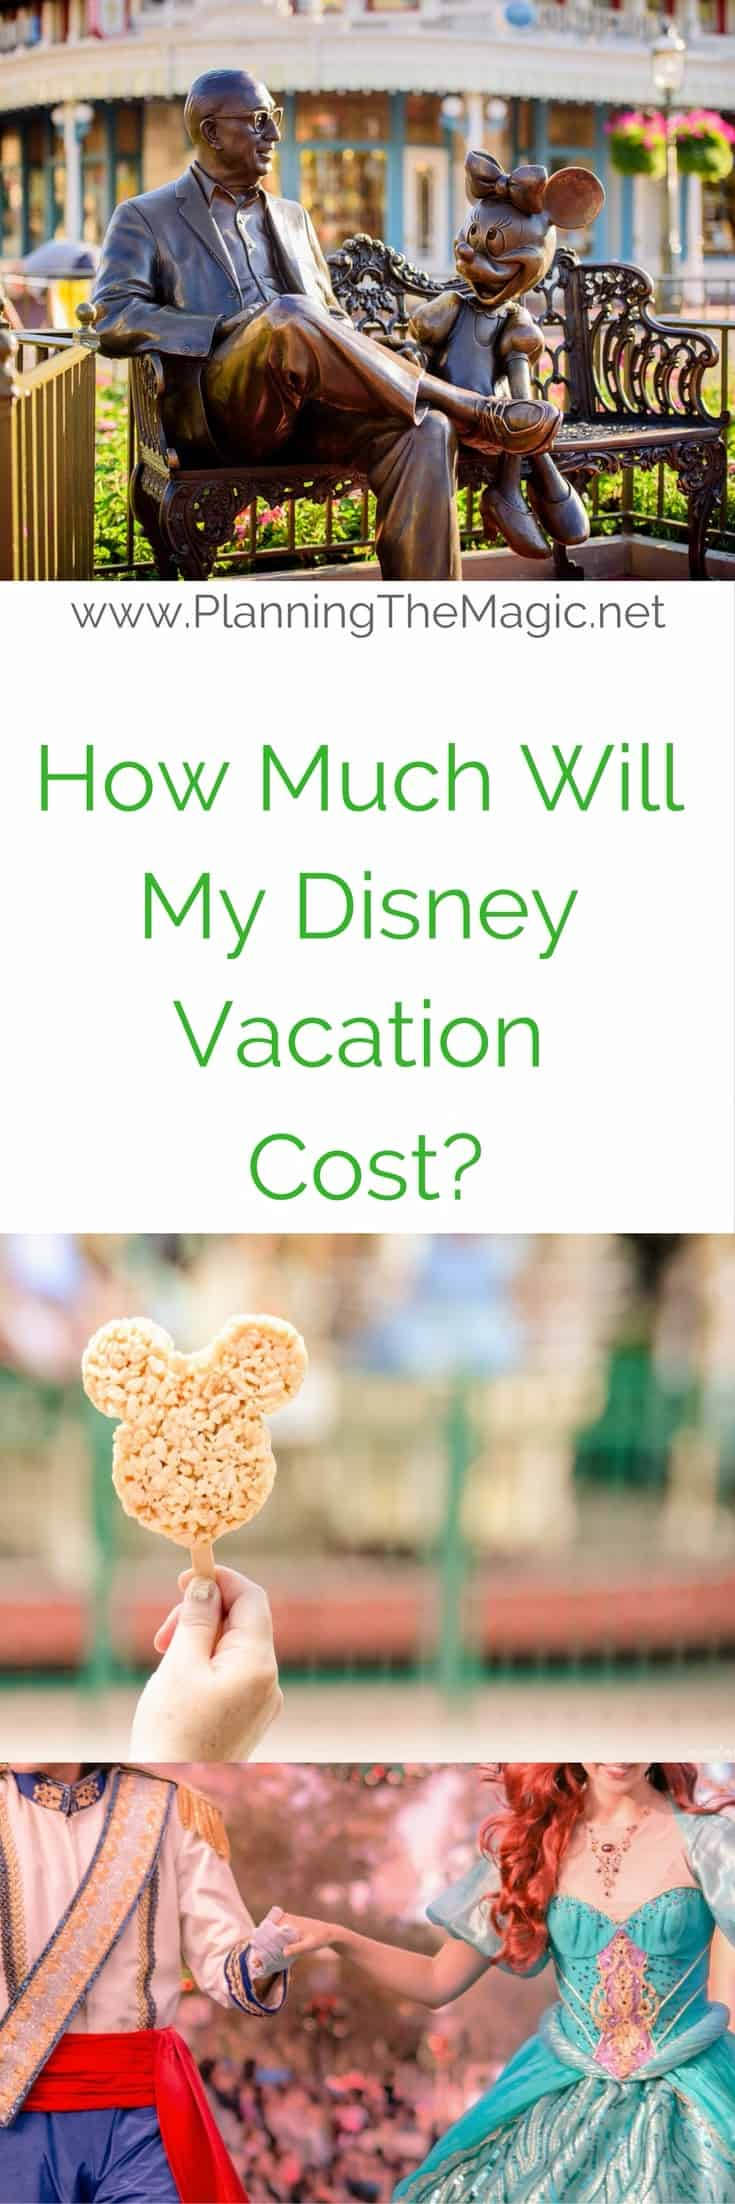 How Much Does A Disney Vacation Cost